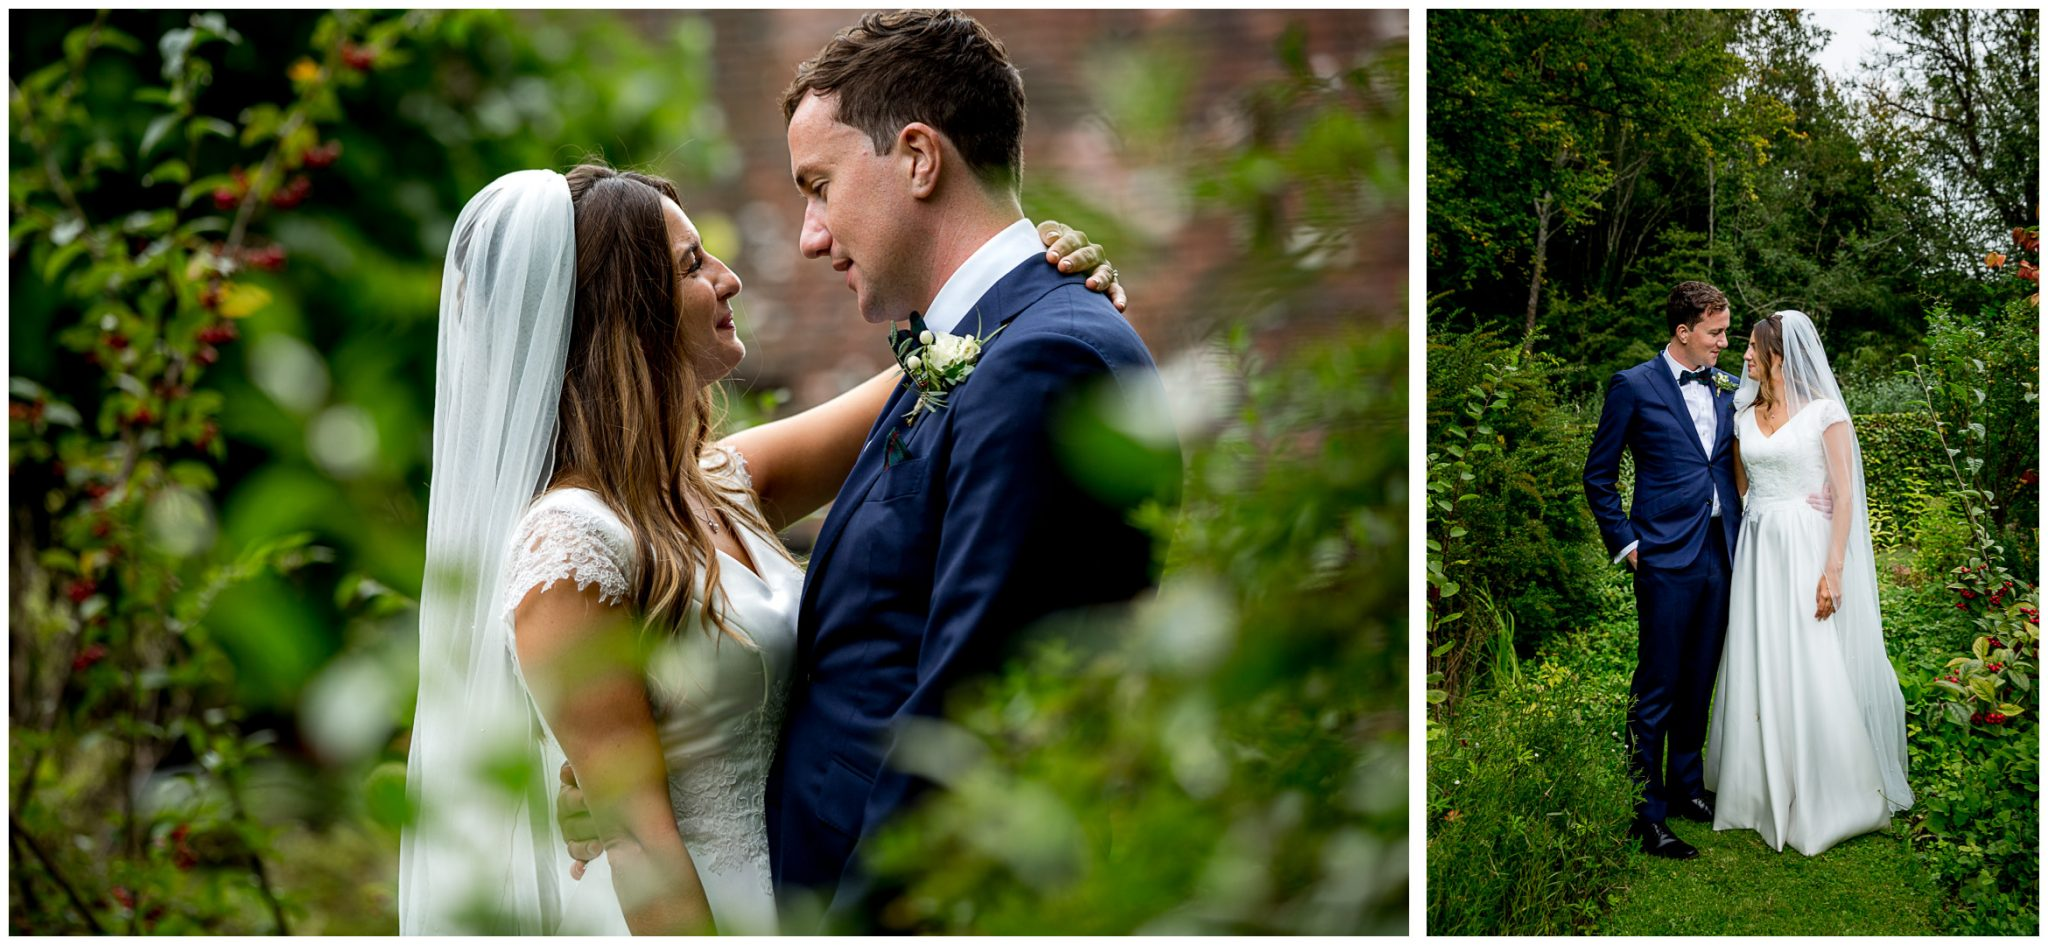 English country garden wedding photography couple portraits